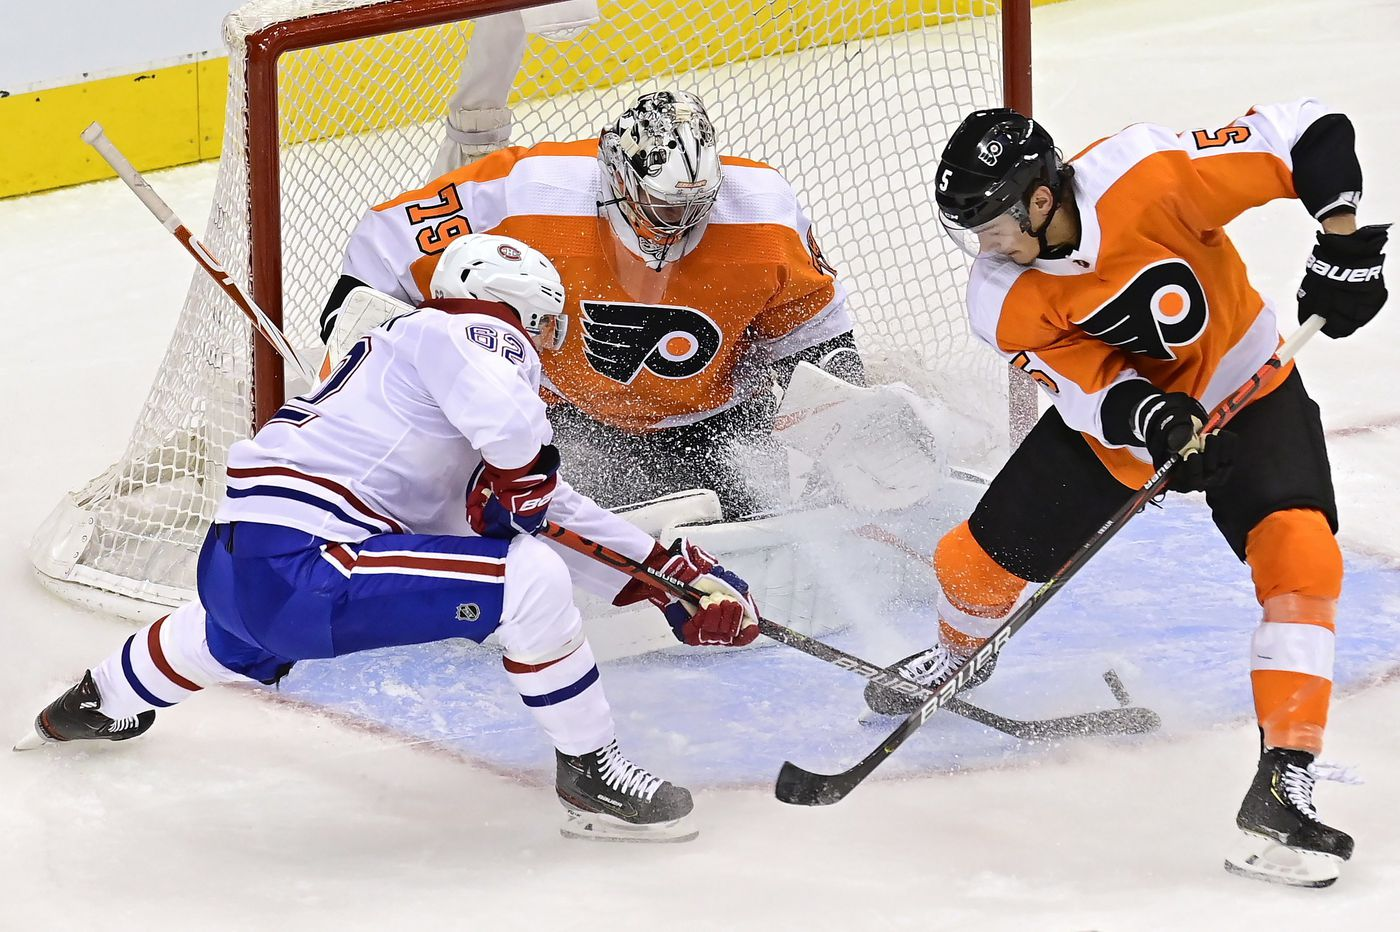 Phil Myers' emergence showing why then-Flyers GM Ron Hextall took gamble on him